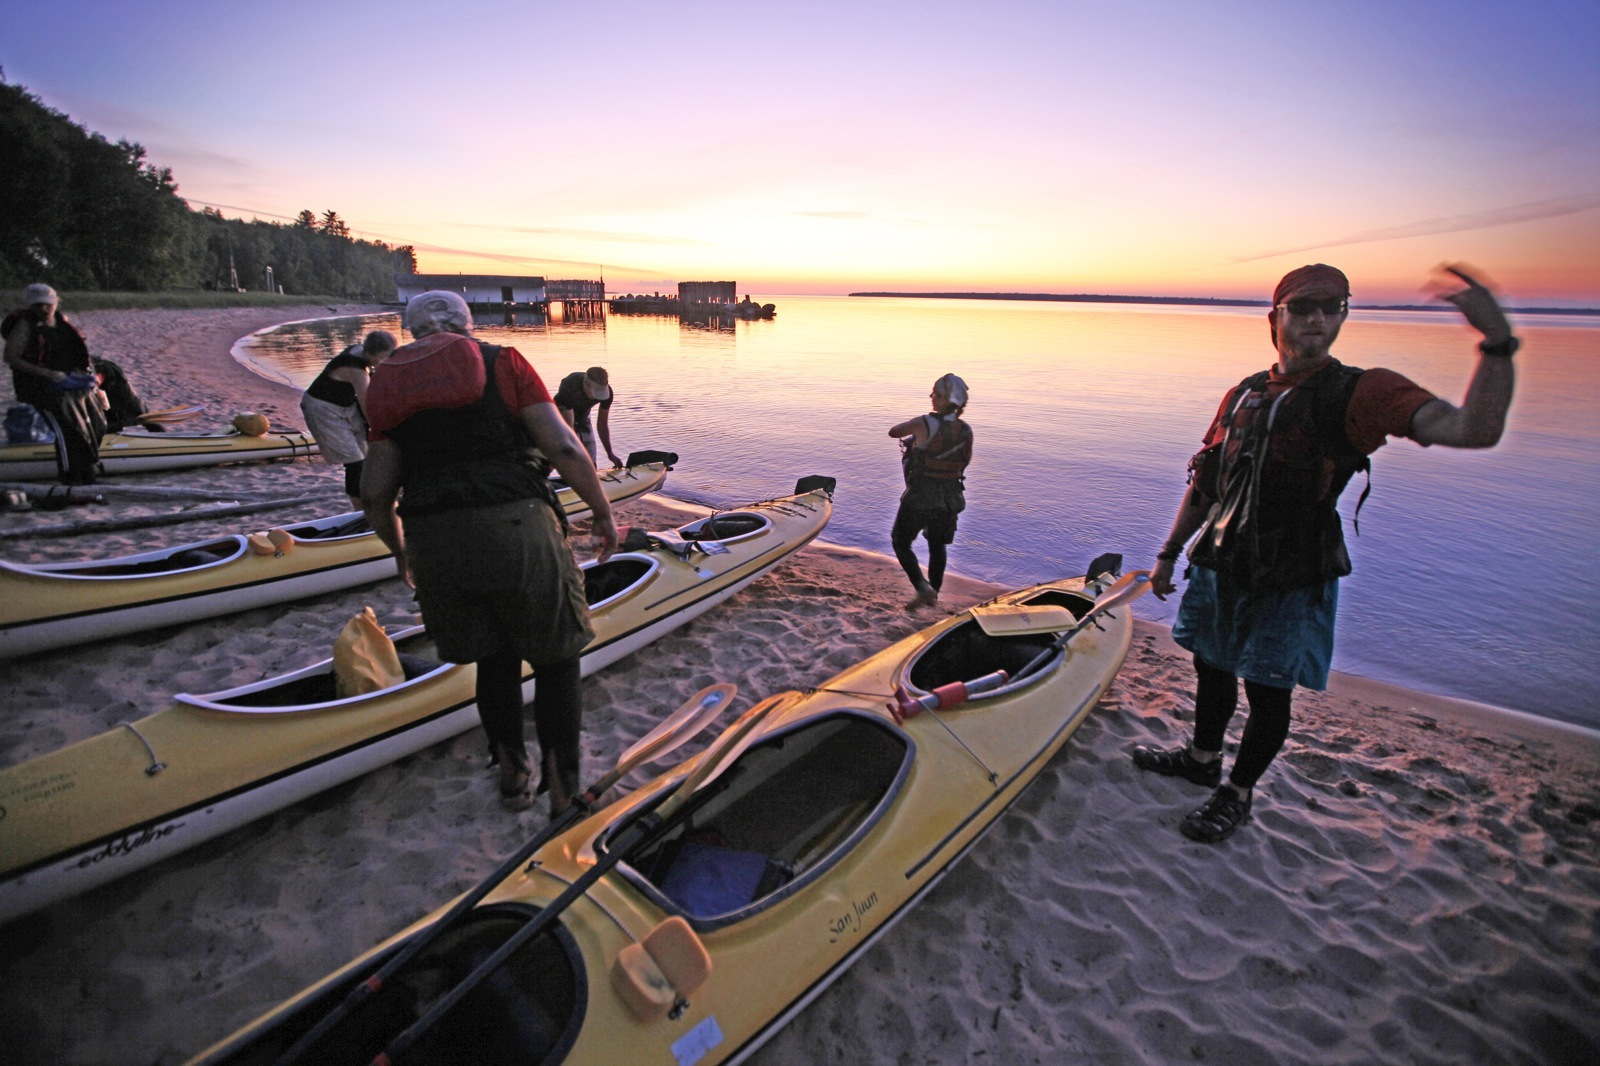 Sea kayakers on the beach of Lake Superior at dusk.